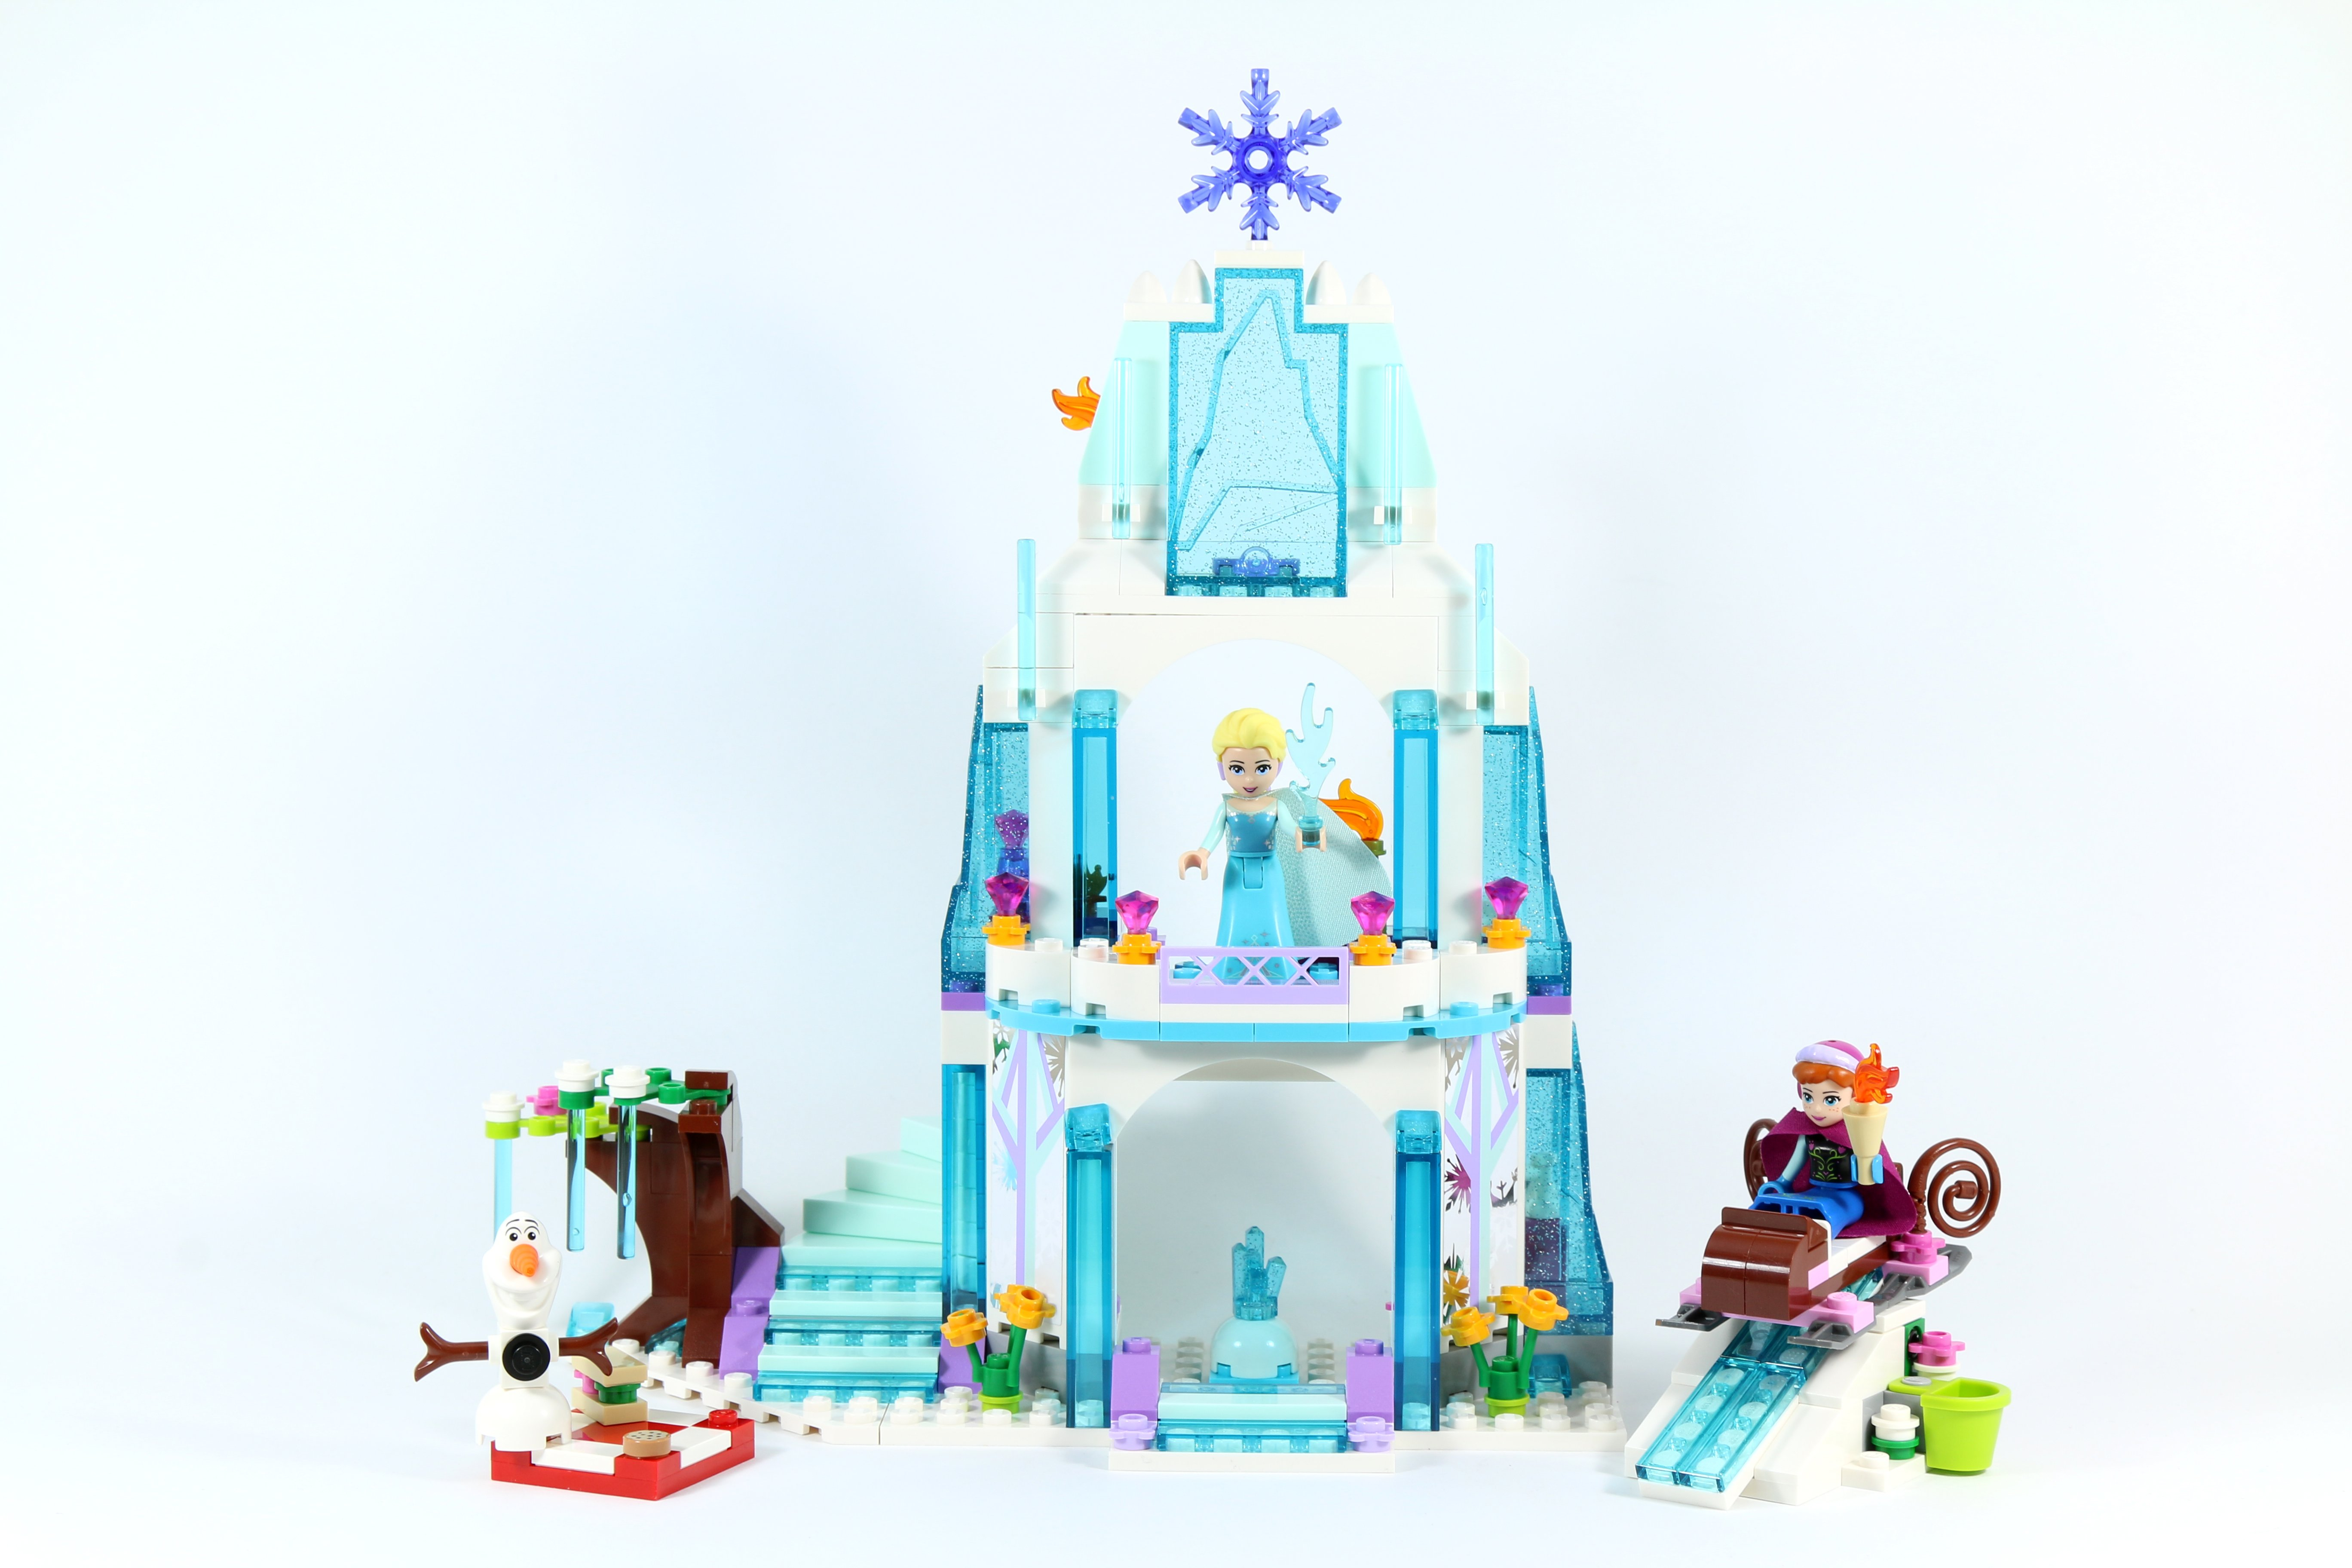 Coloring Pages Lego Frozen : Coloring pages ice princess: coloring pages flowers in a vase jokes